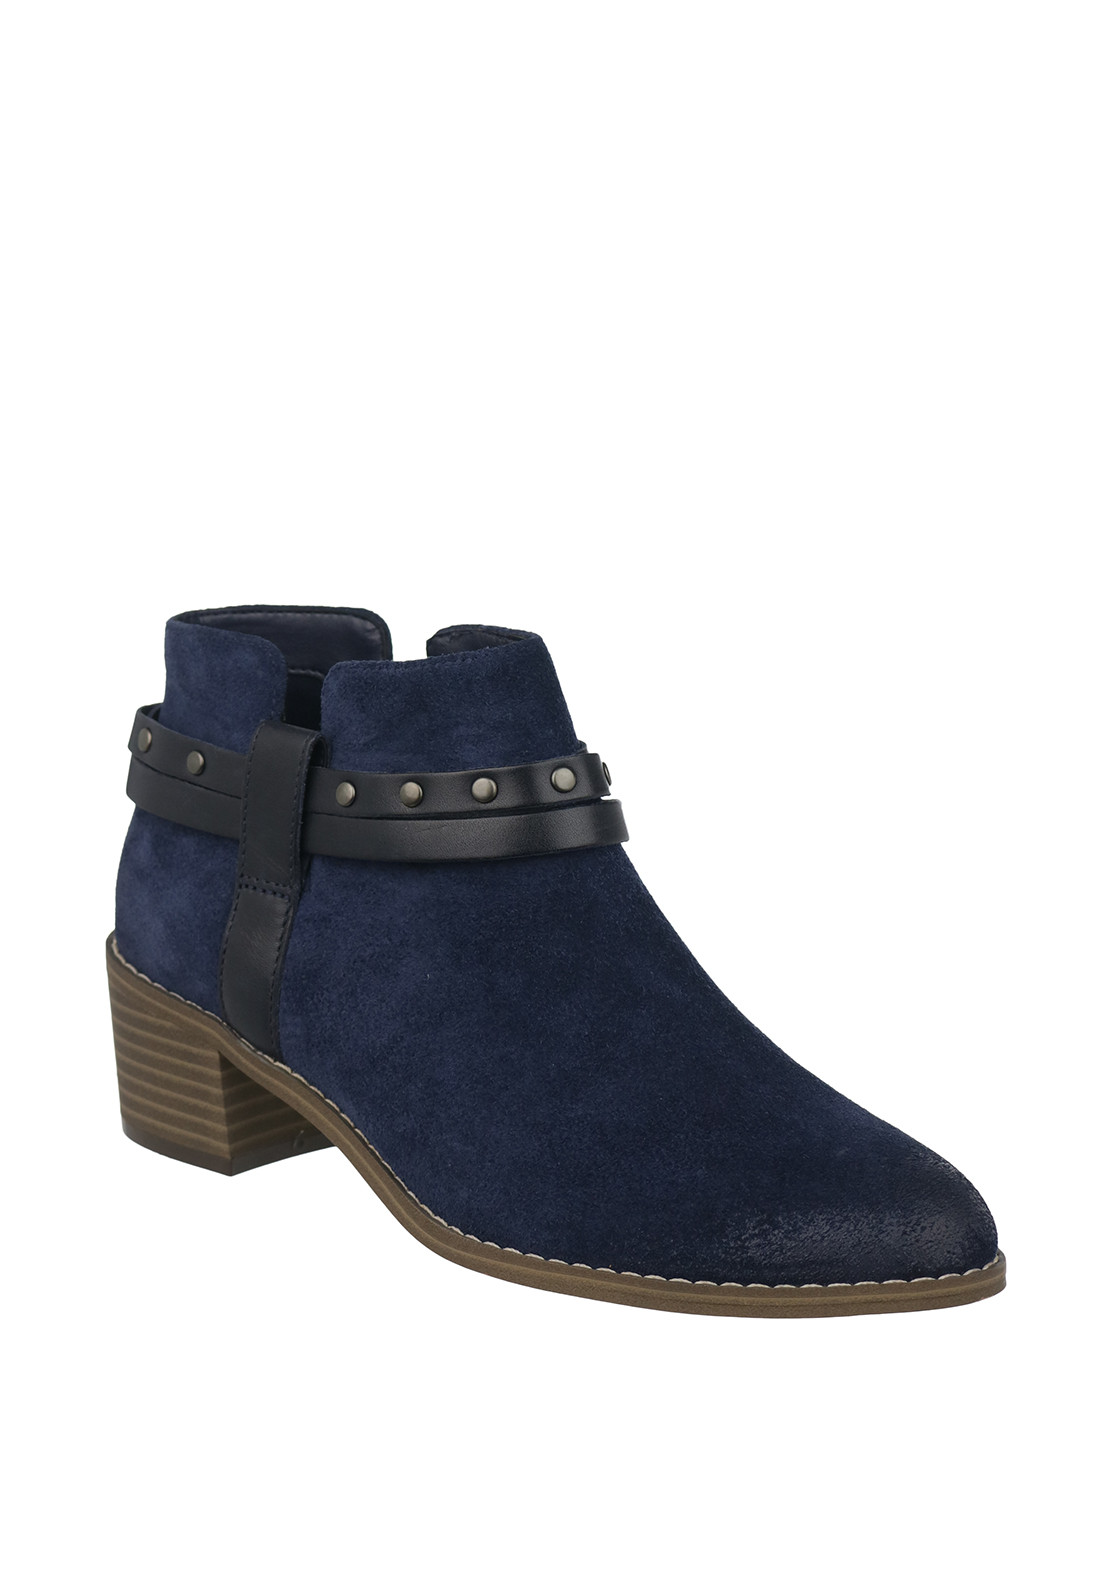 Clarks Womens Breccan Shine Suede Strappy Ankle Boots, Navy